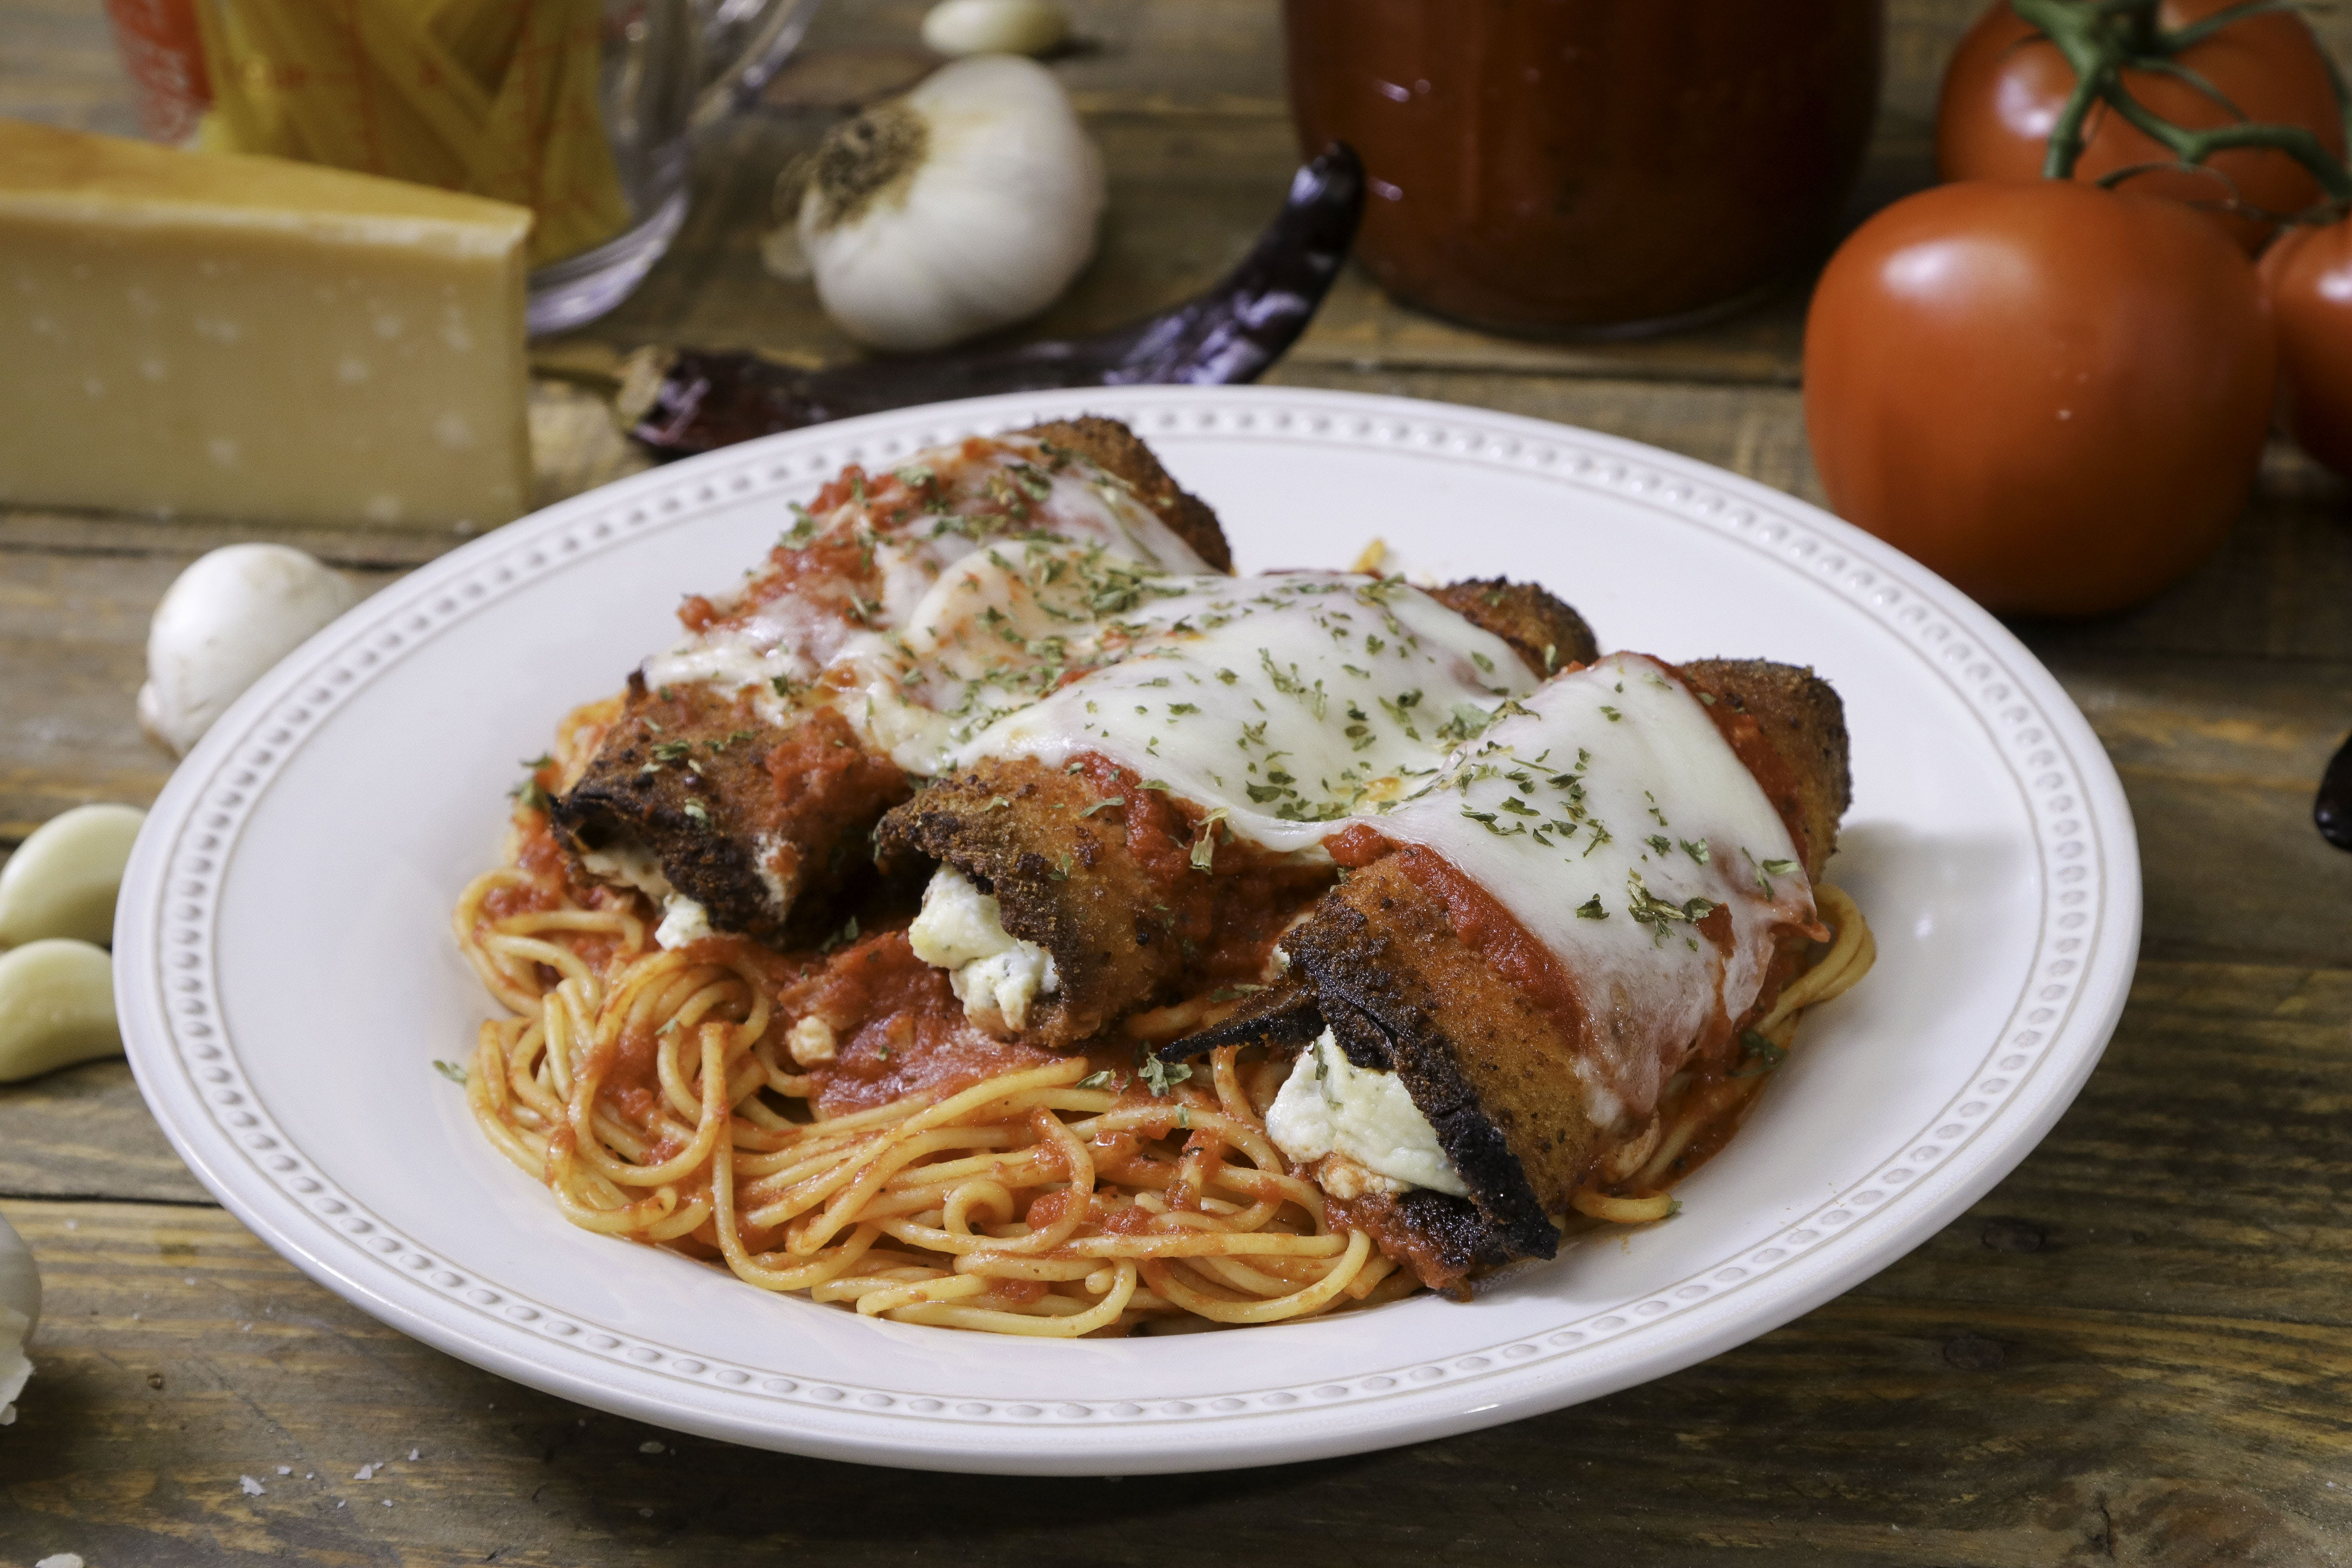 Breaded Eggplant Parmigiana with Spaghetti from Ameci Pizza & Pasta - Lake Forest in Lake Forest, CA